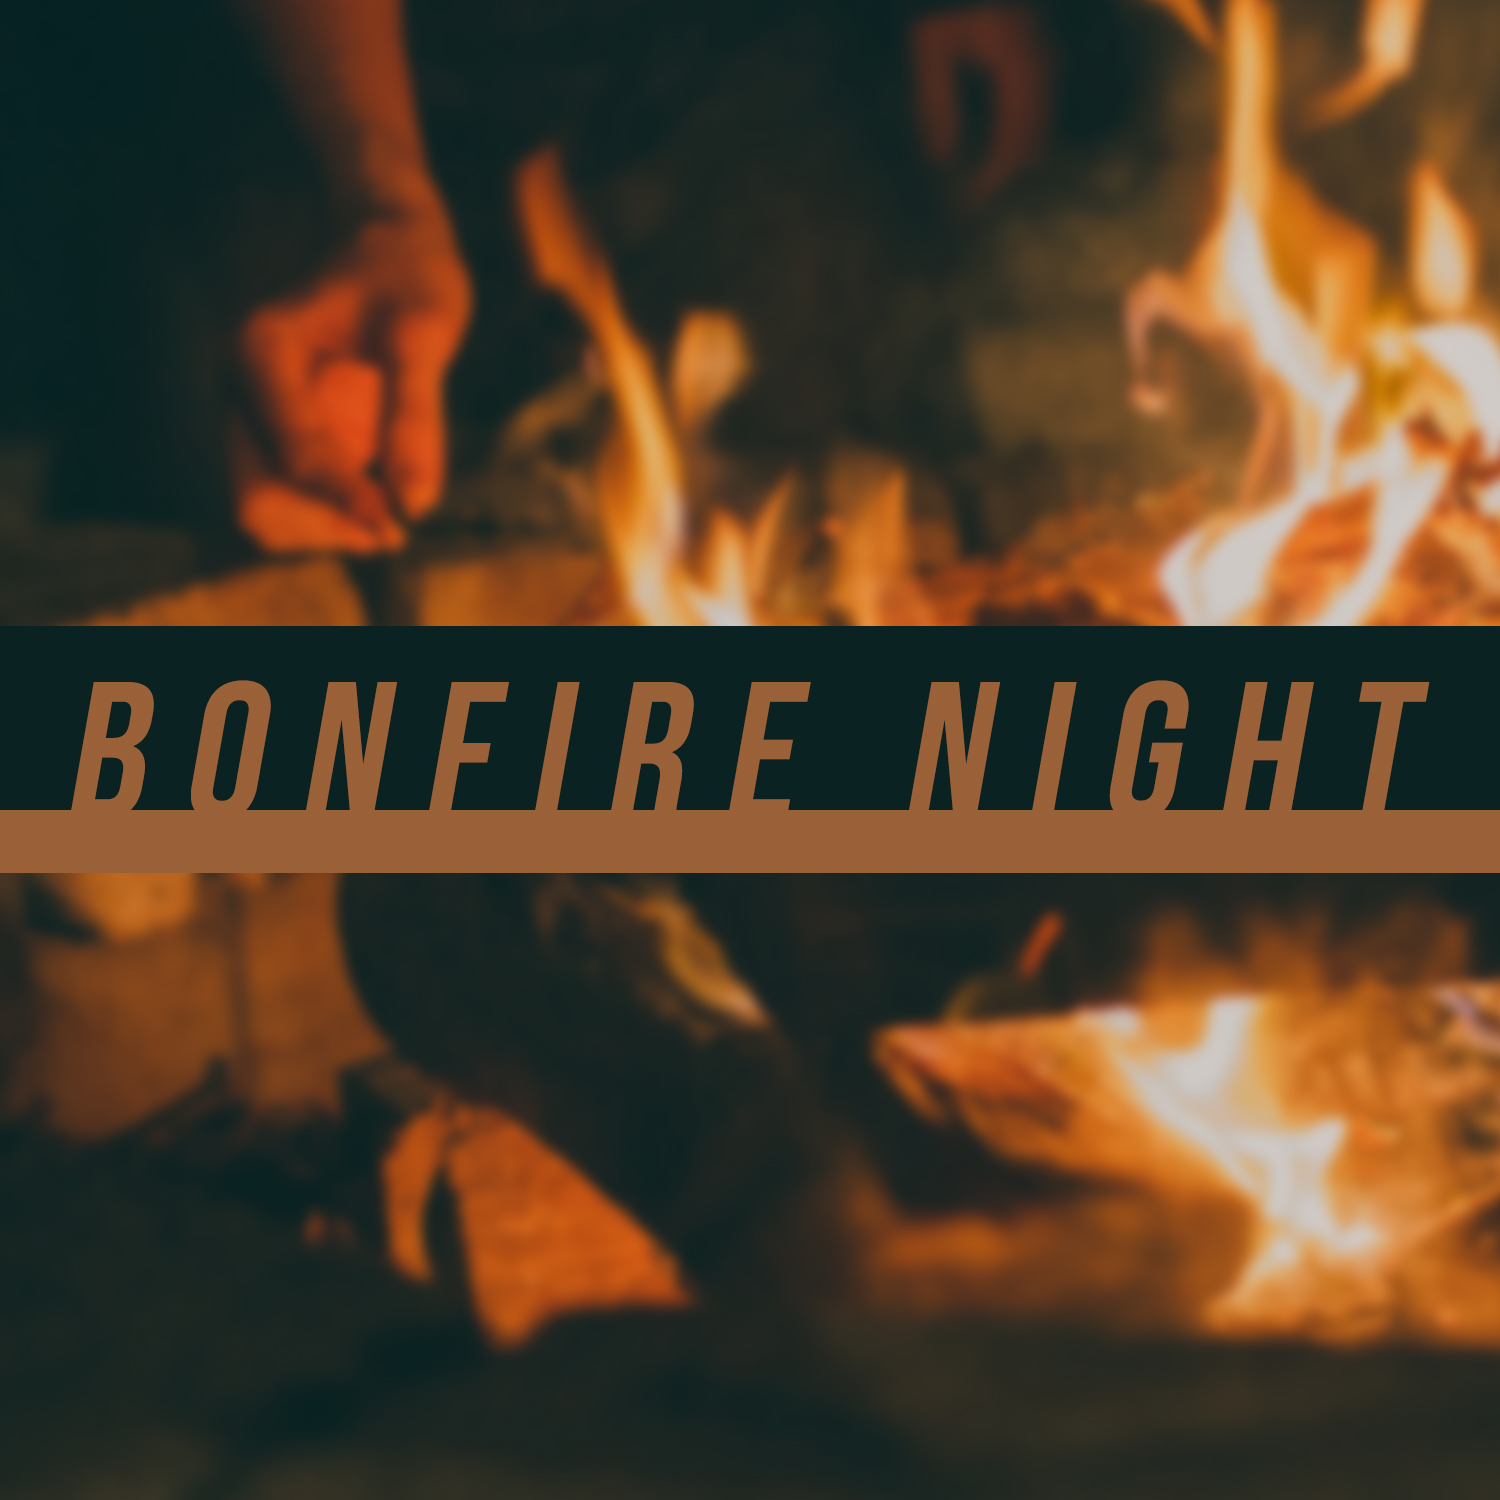 BonfireNightWebsite.jpg